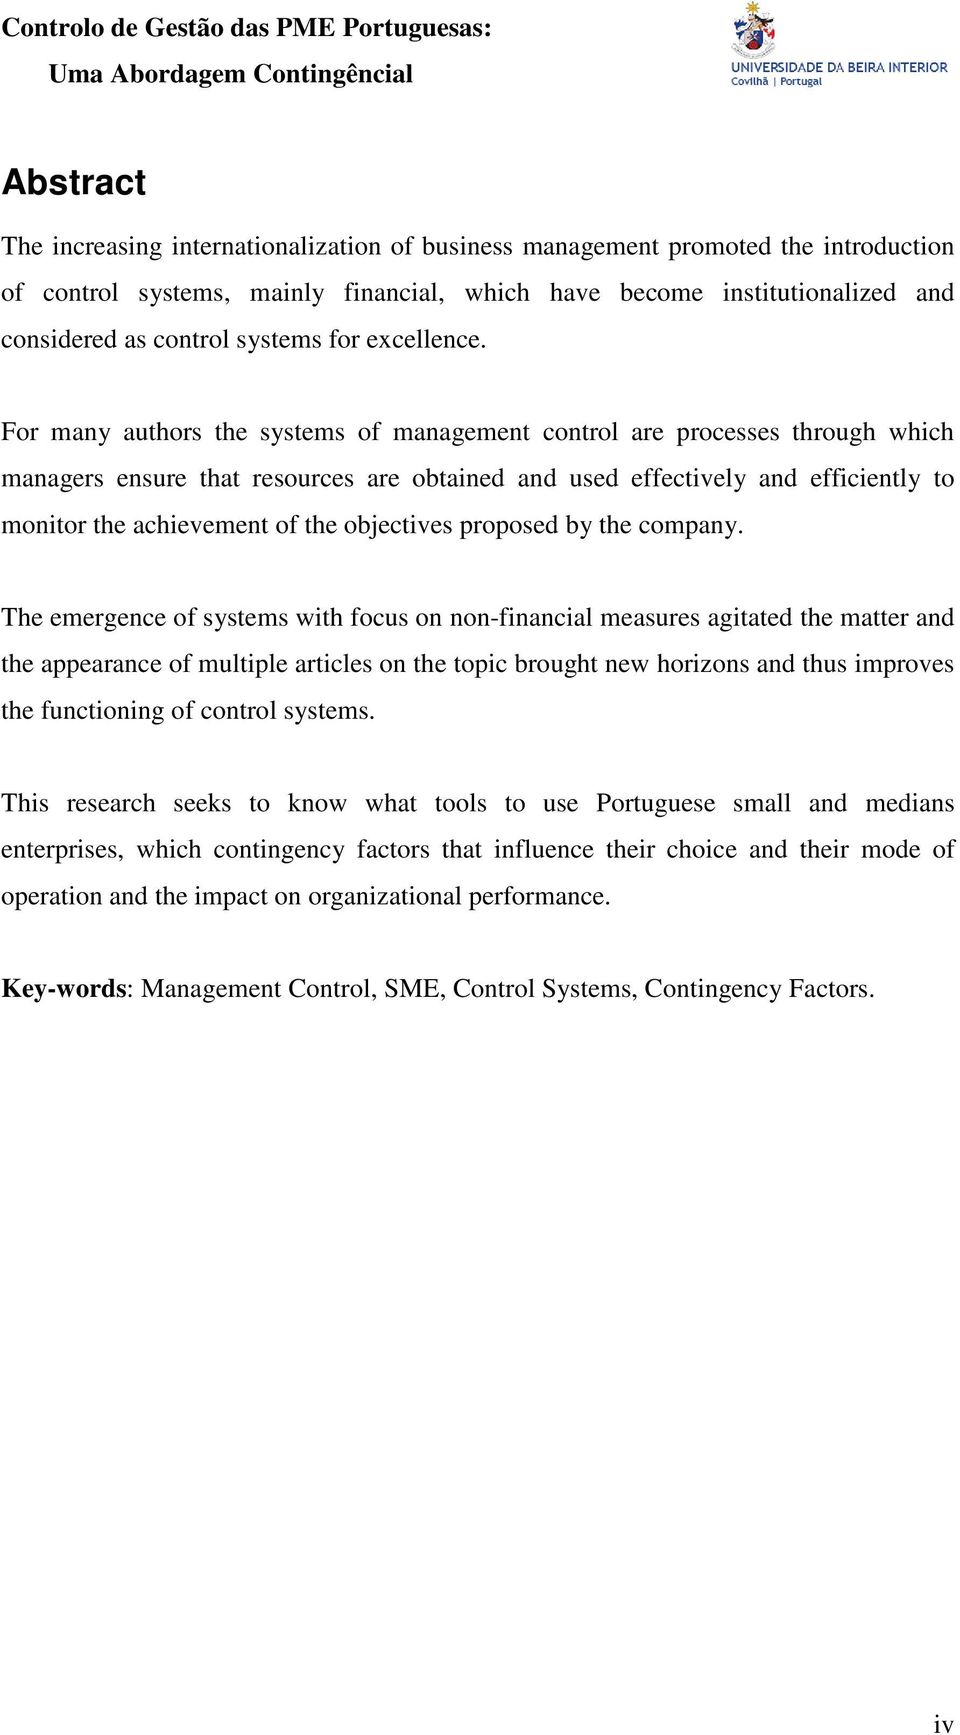 For many authors the systems of management control are processes through which managers ensure that resources are obtained and used effectively and efficiently to monitor the achievement of the